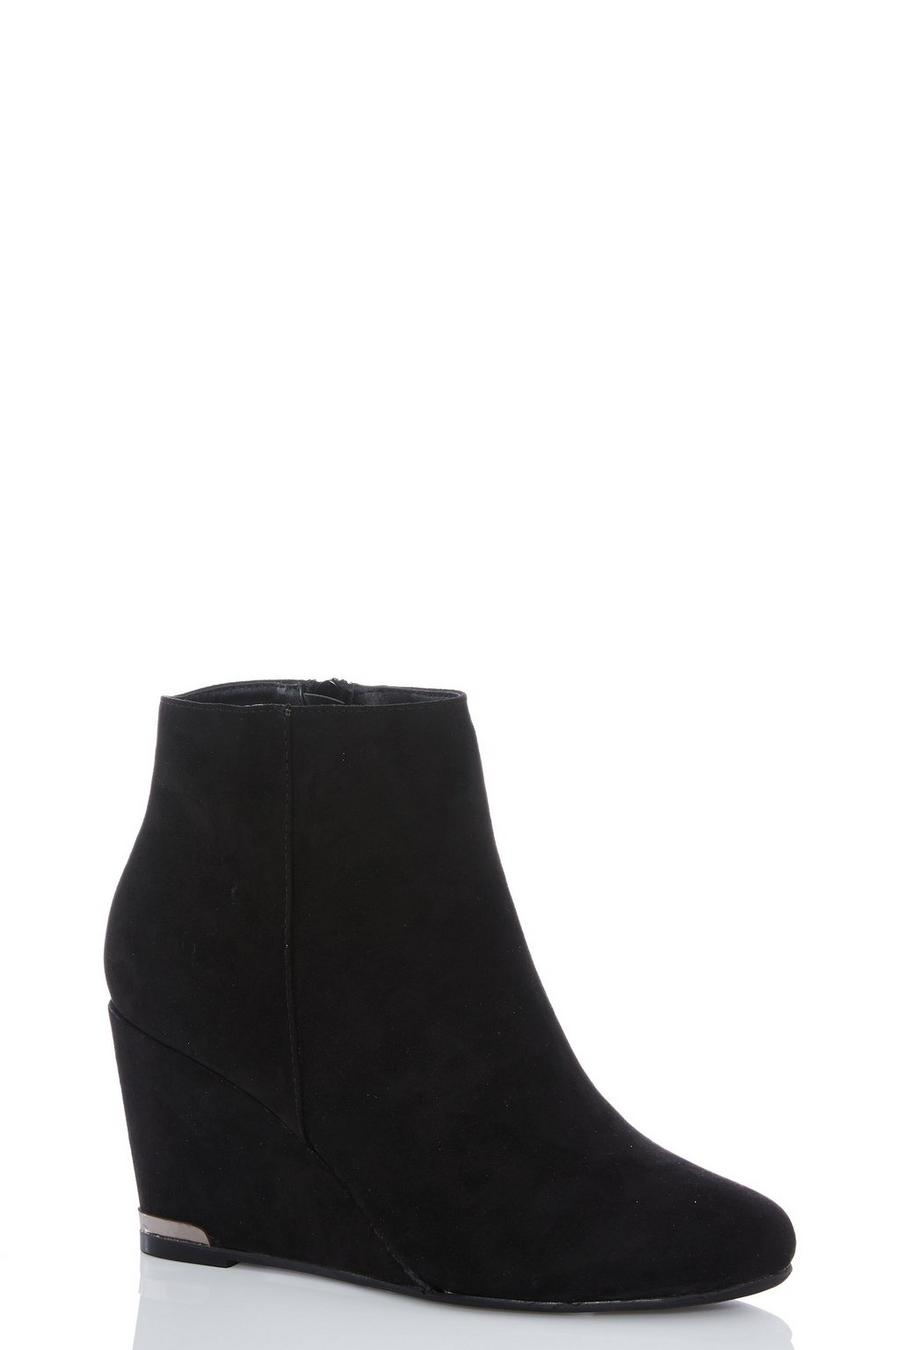 9bc0d1a29d9 Black Faux Suede Wedge Heel Ankle Boots